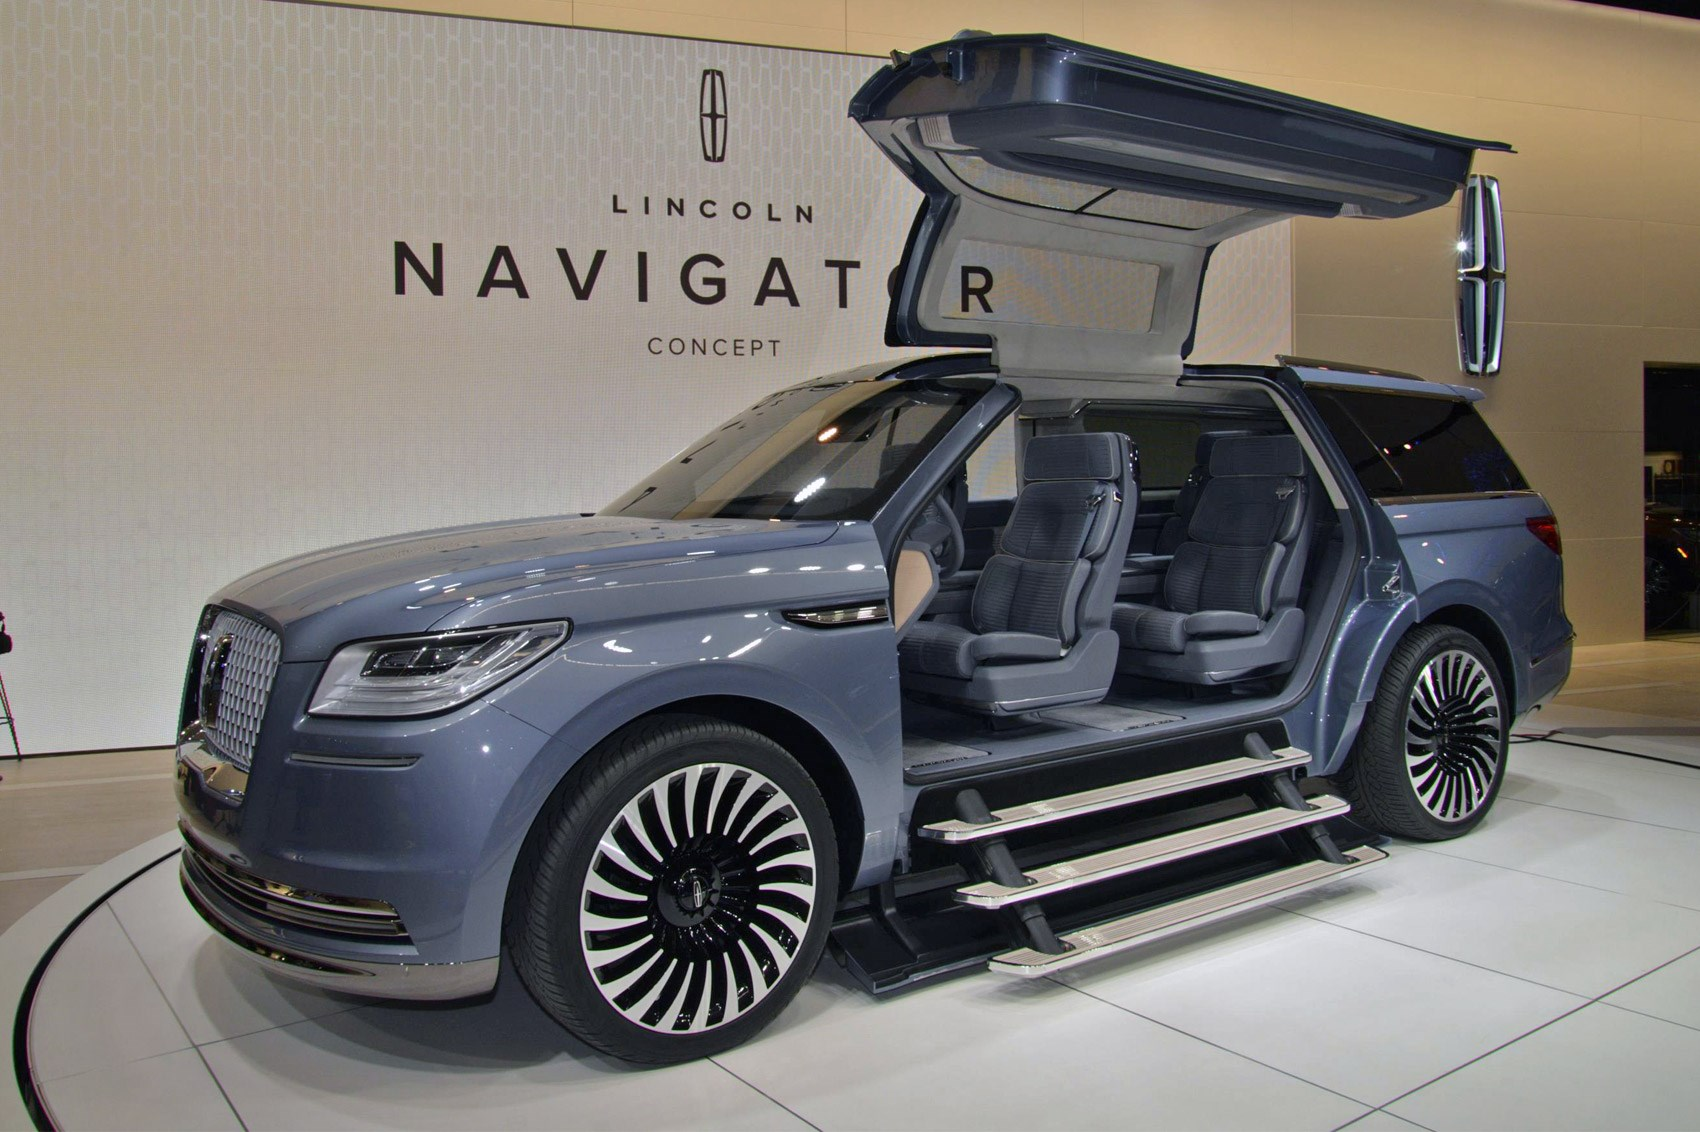 lincoln blows the doors off with new navigator concept by car magazine. Black Bedroom Furniture Sets. Home Design Ideas